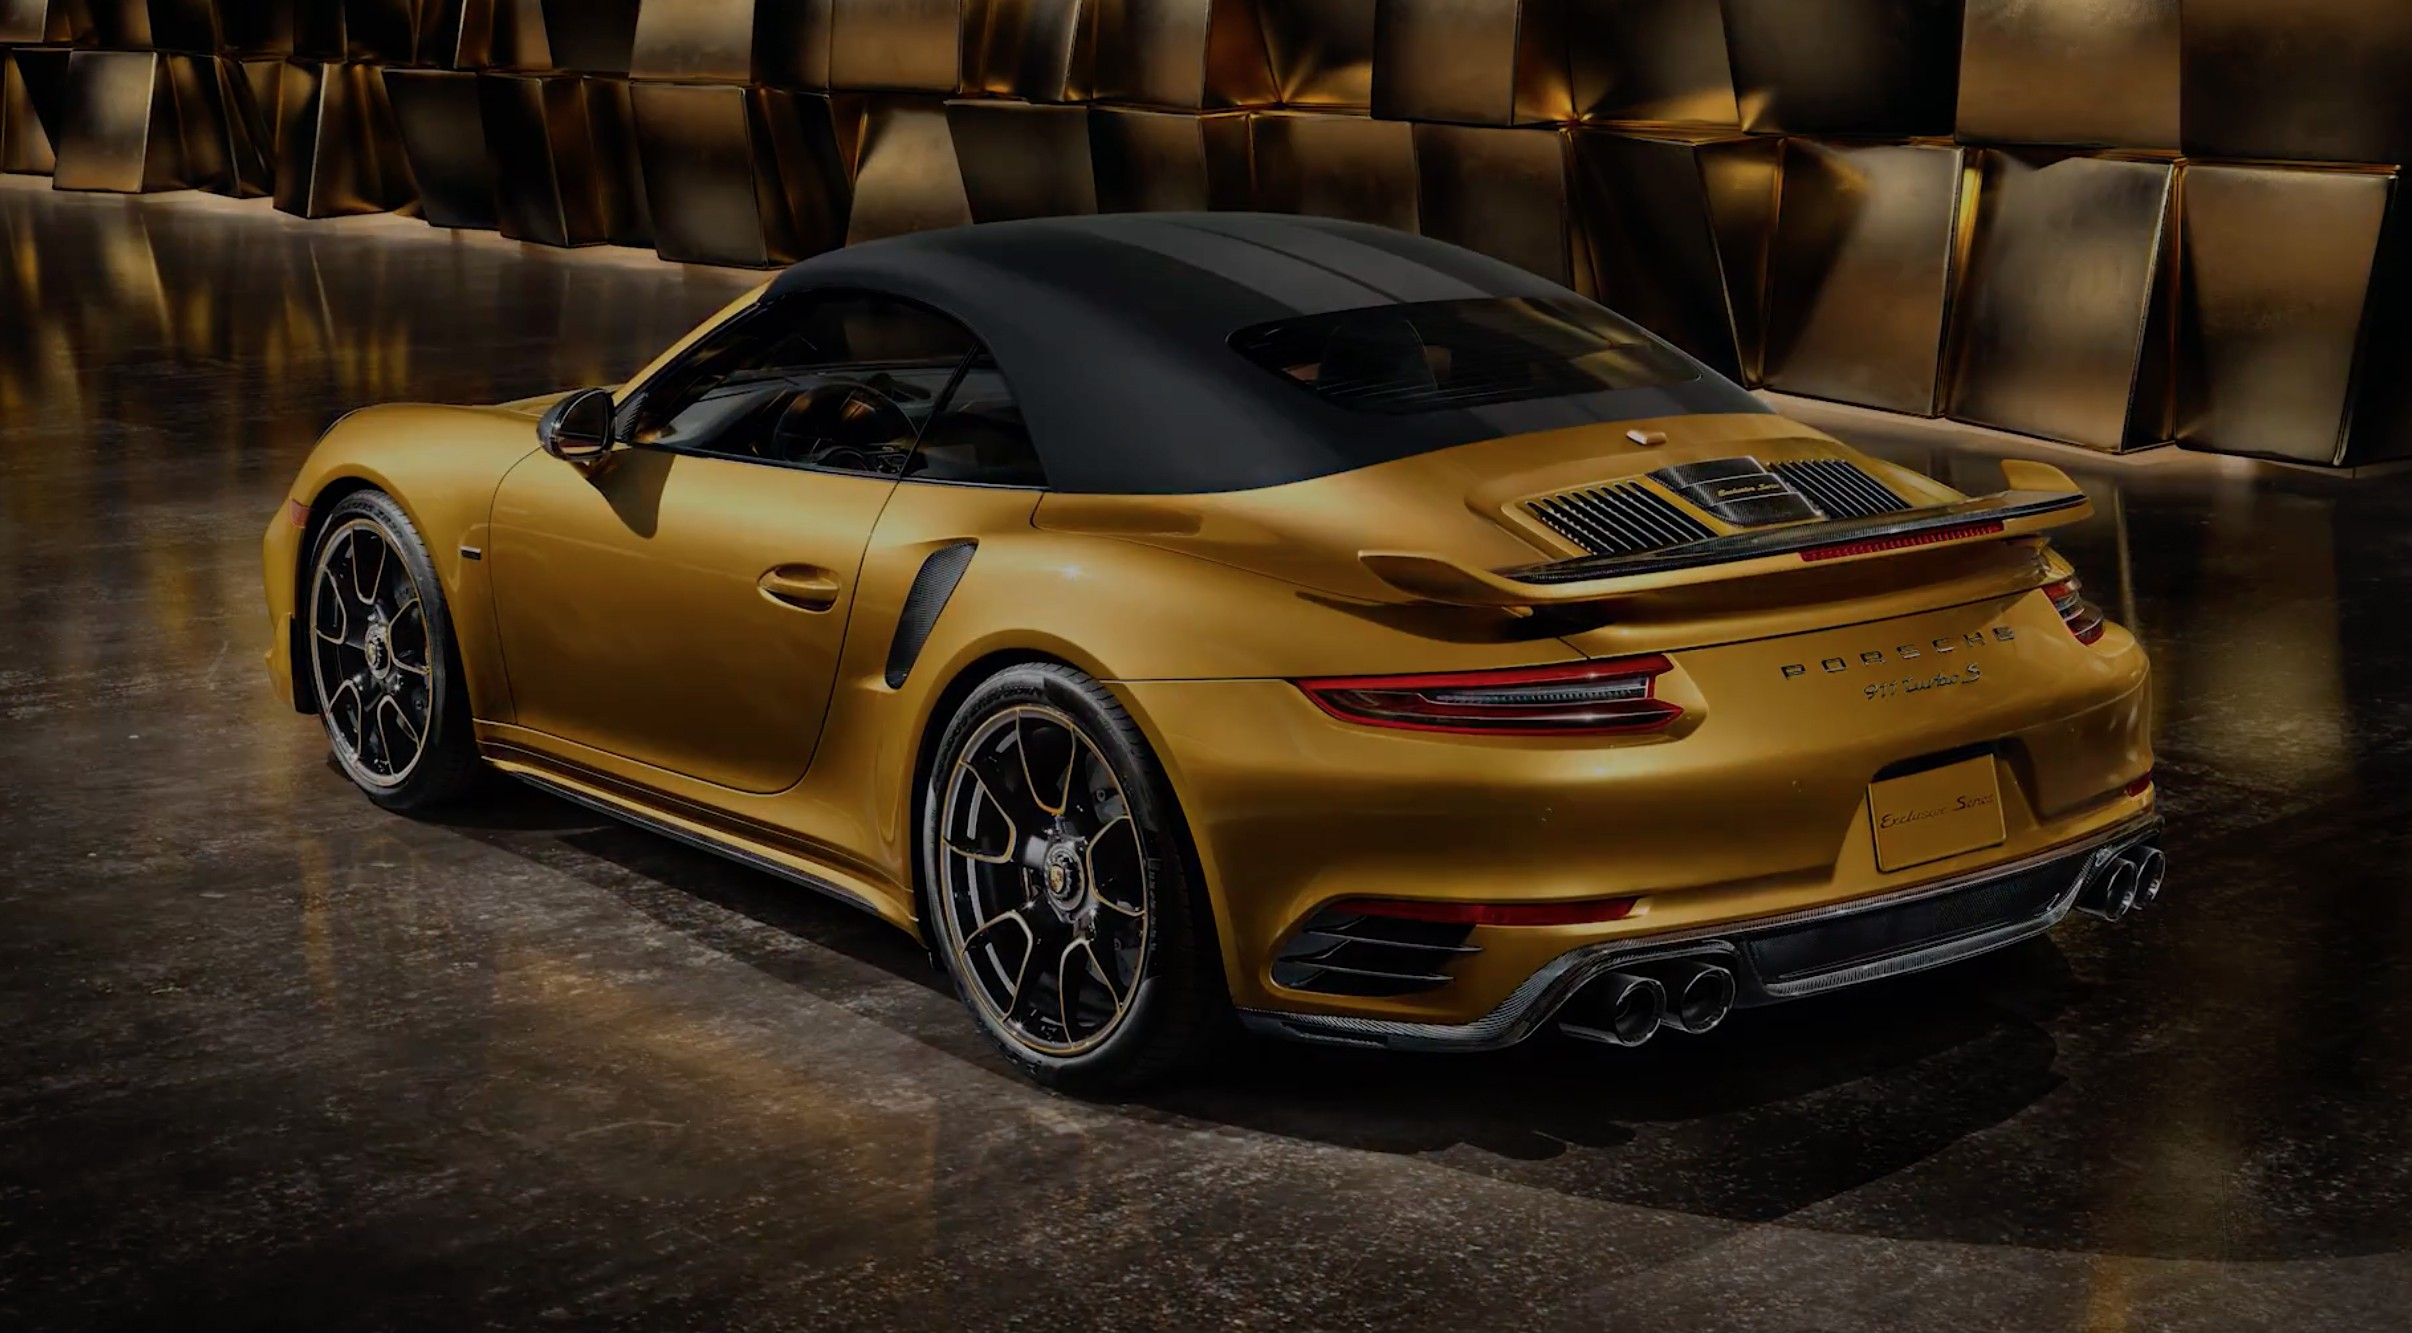 Porsche 911 Turbo s exclusive series Cabriolet